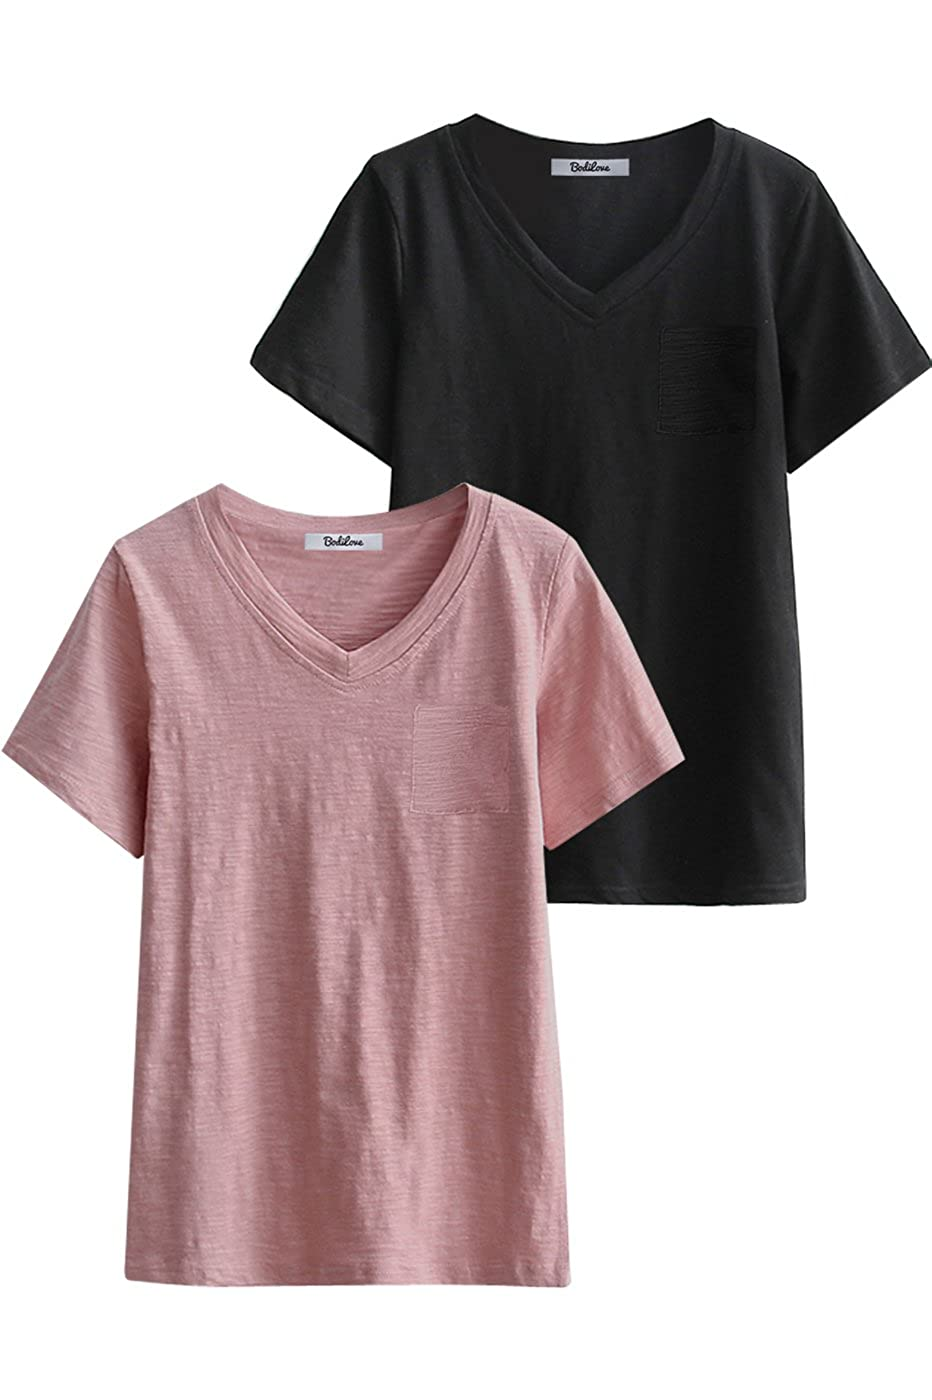 a81b7b71 DESIGN DETAILS: Short sleeves with V neck line make your look classic.  Relaxed pocket tee with a cute, ...